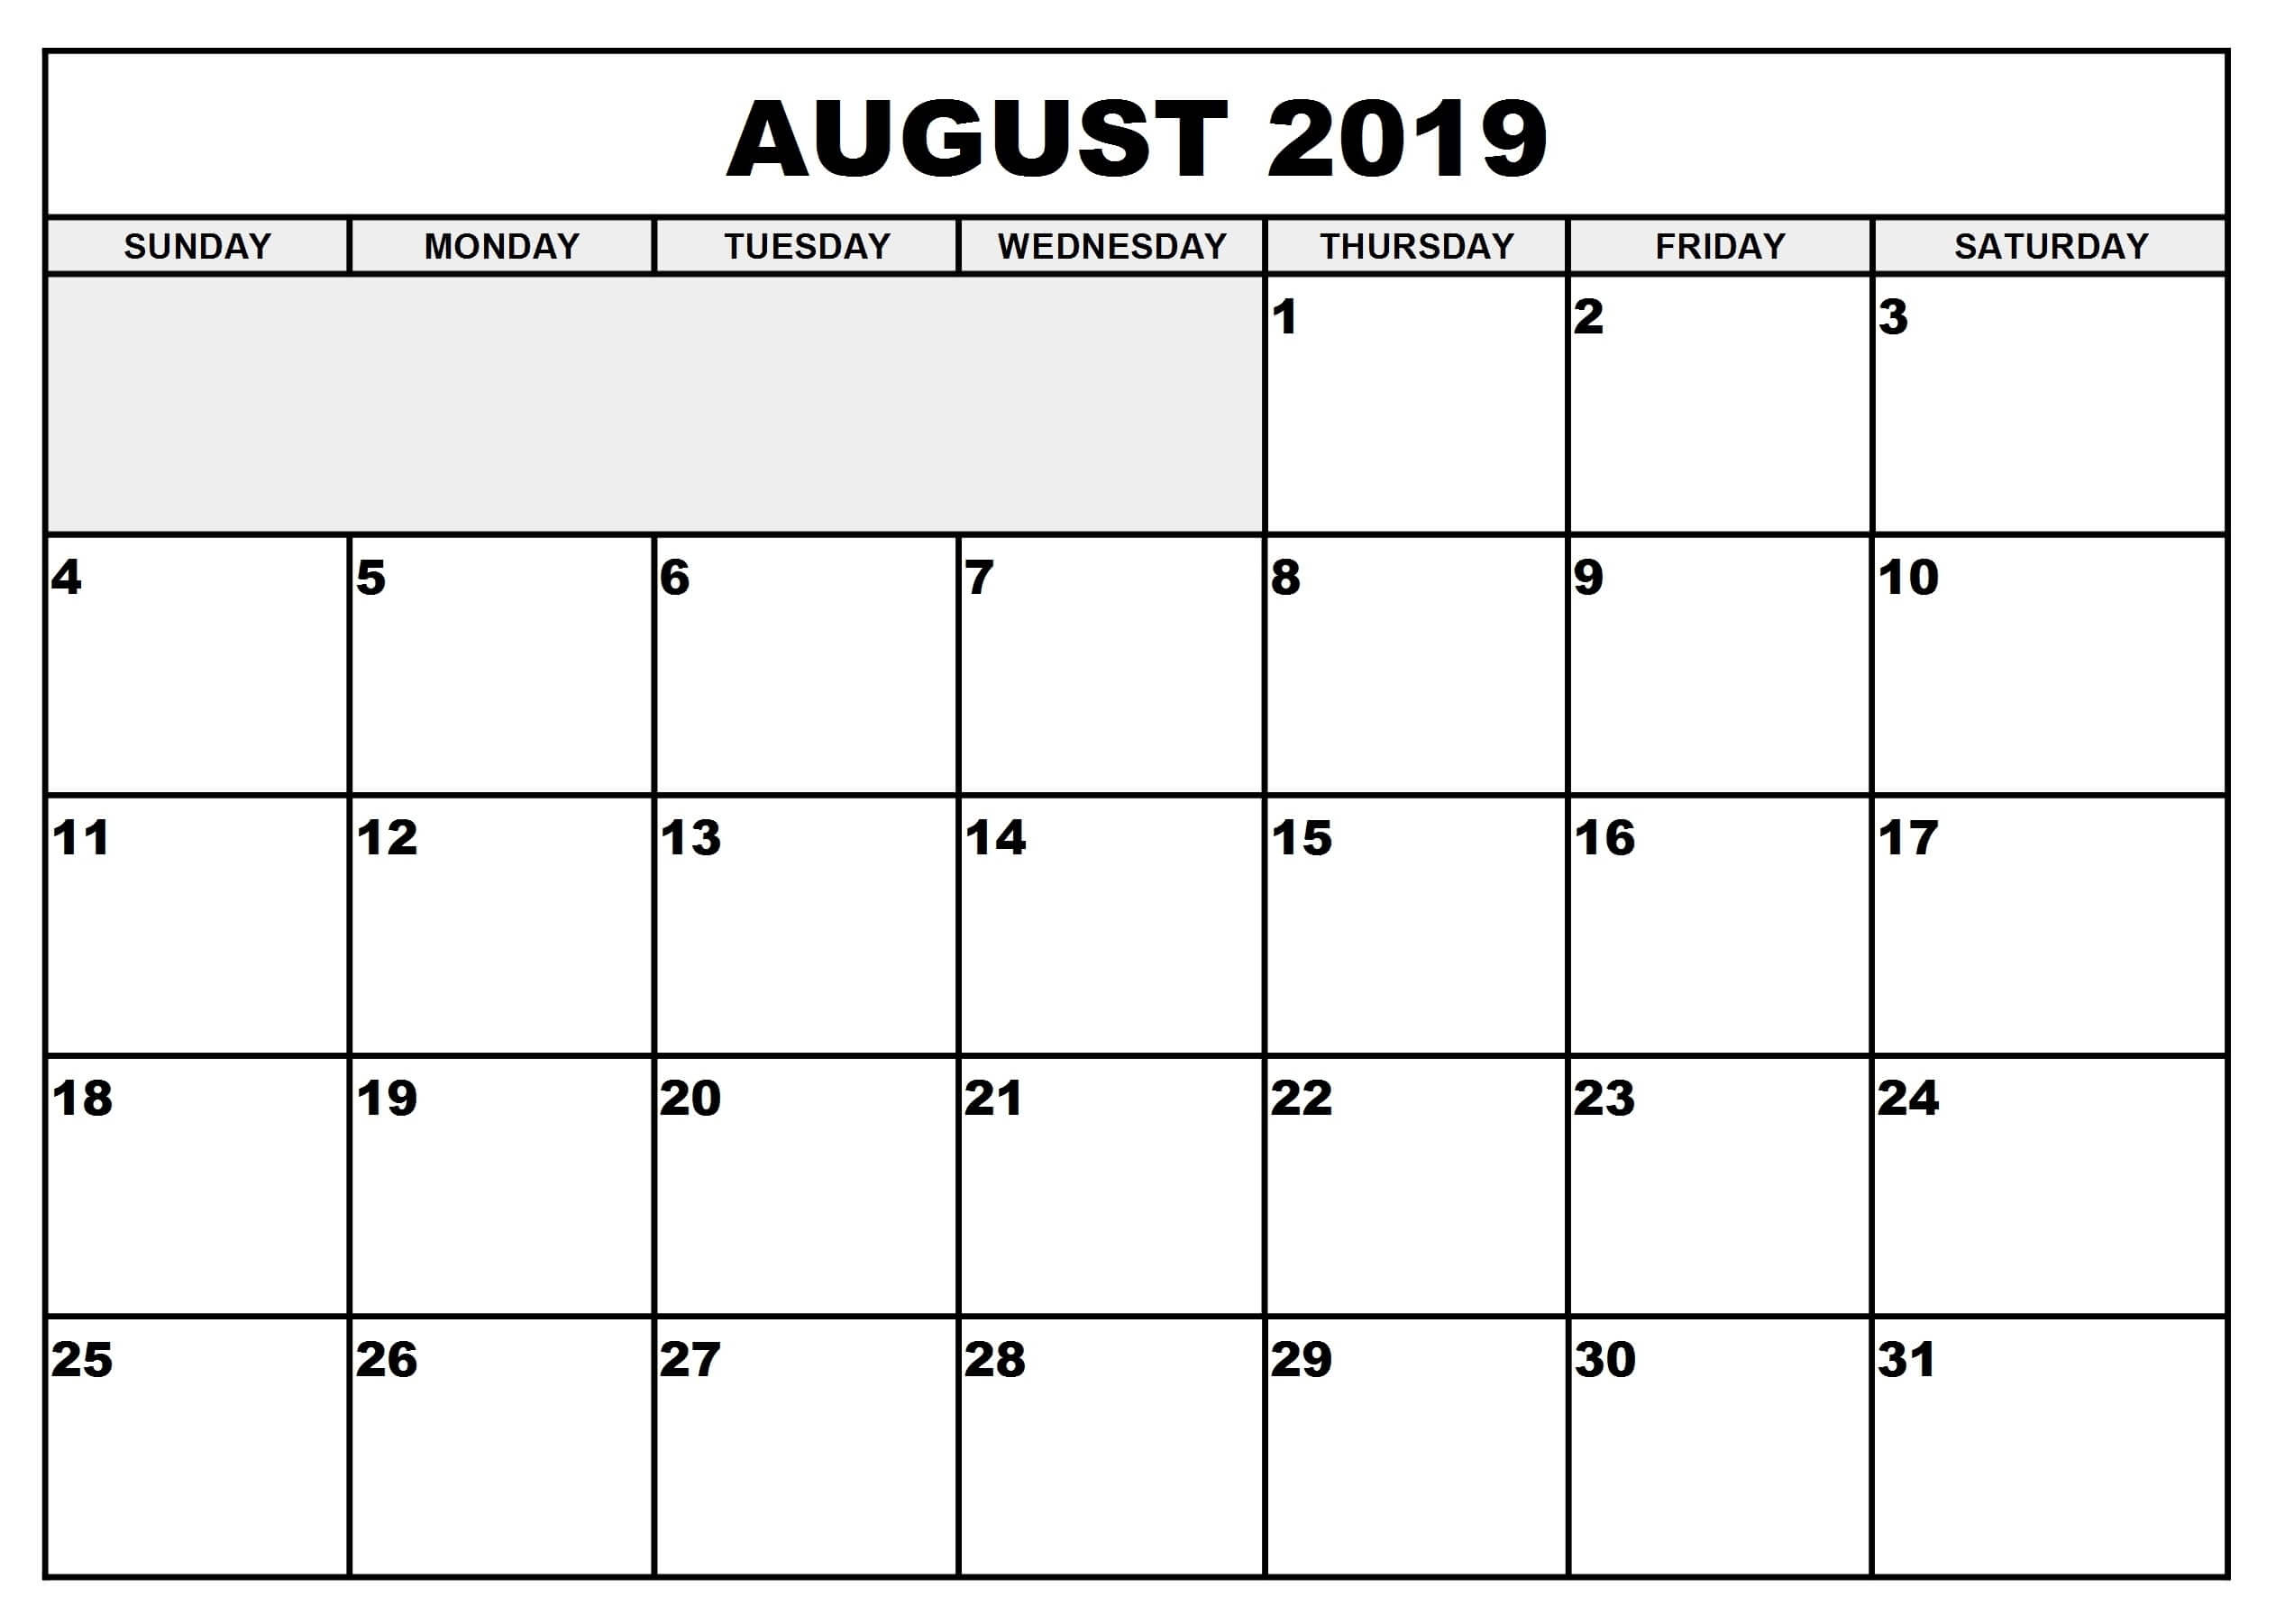 August 2019 Calendar With Holidays Malaysia - Printable Calendar within August Blank Calendar Template